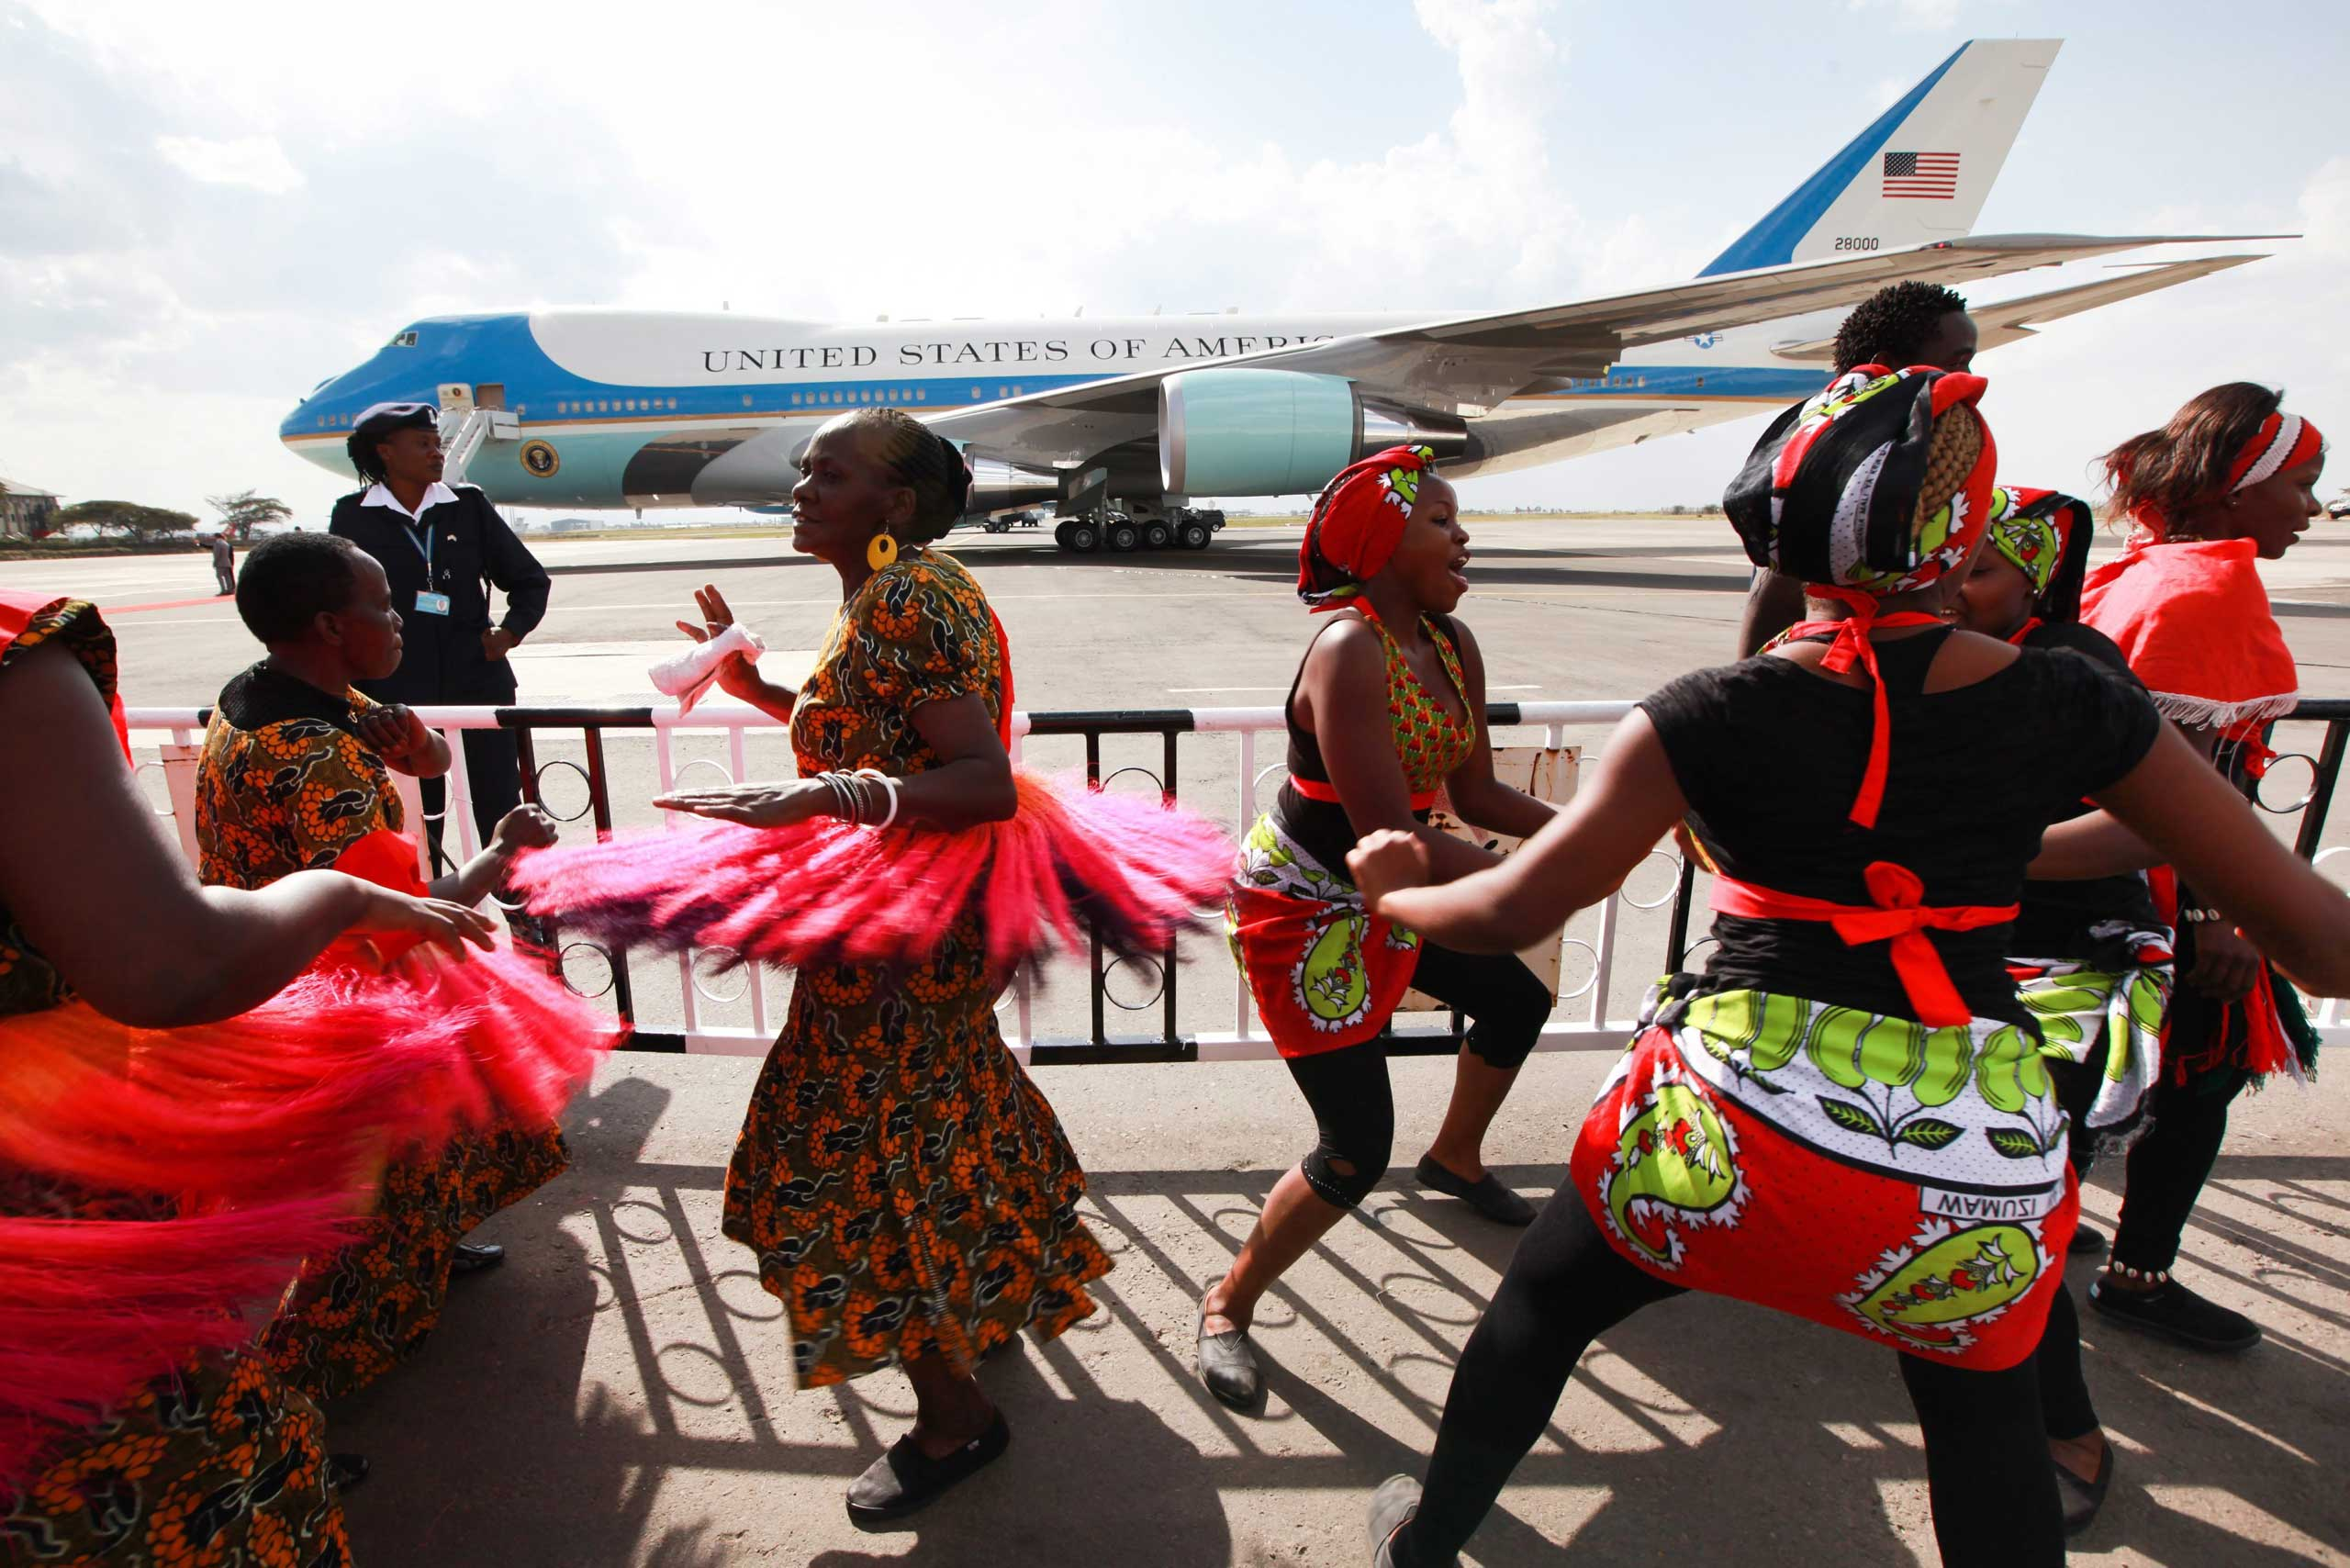 Kenyan traditional dancers sing as they wait to entertain President Barack Obama upon his arrival to board Air Force One for his departure to Ethiopia, at the Jomo Kenyatta International Airport in Nairobi on July 26, 2015.